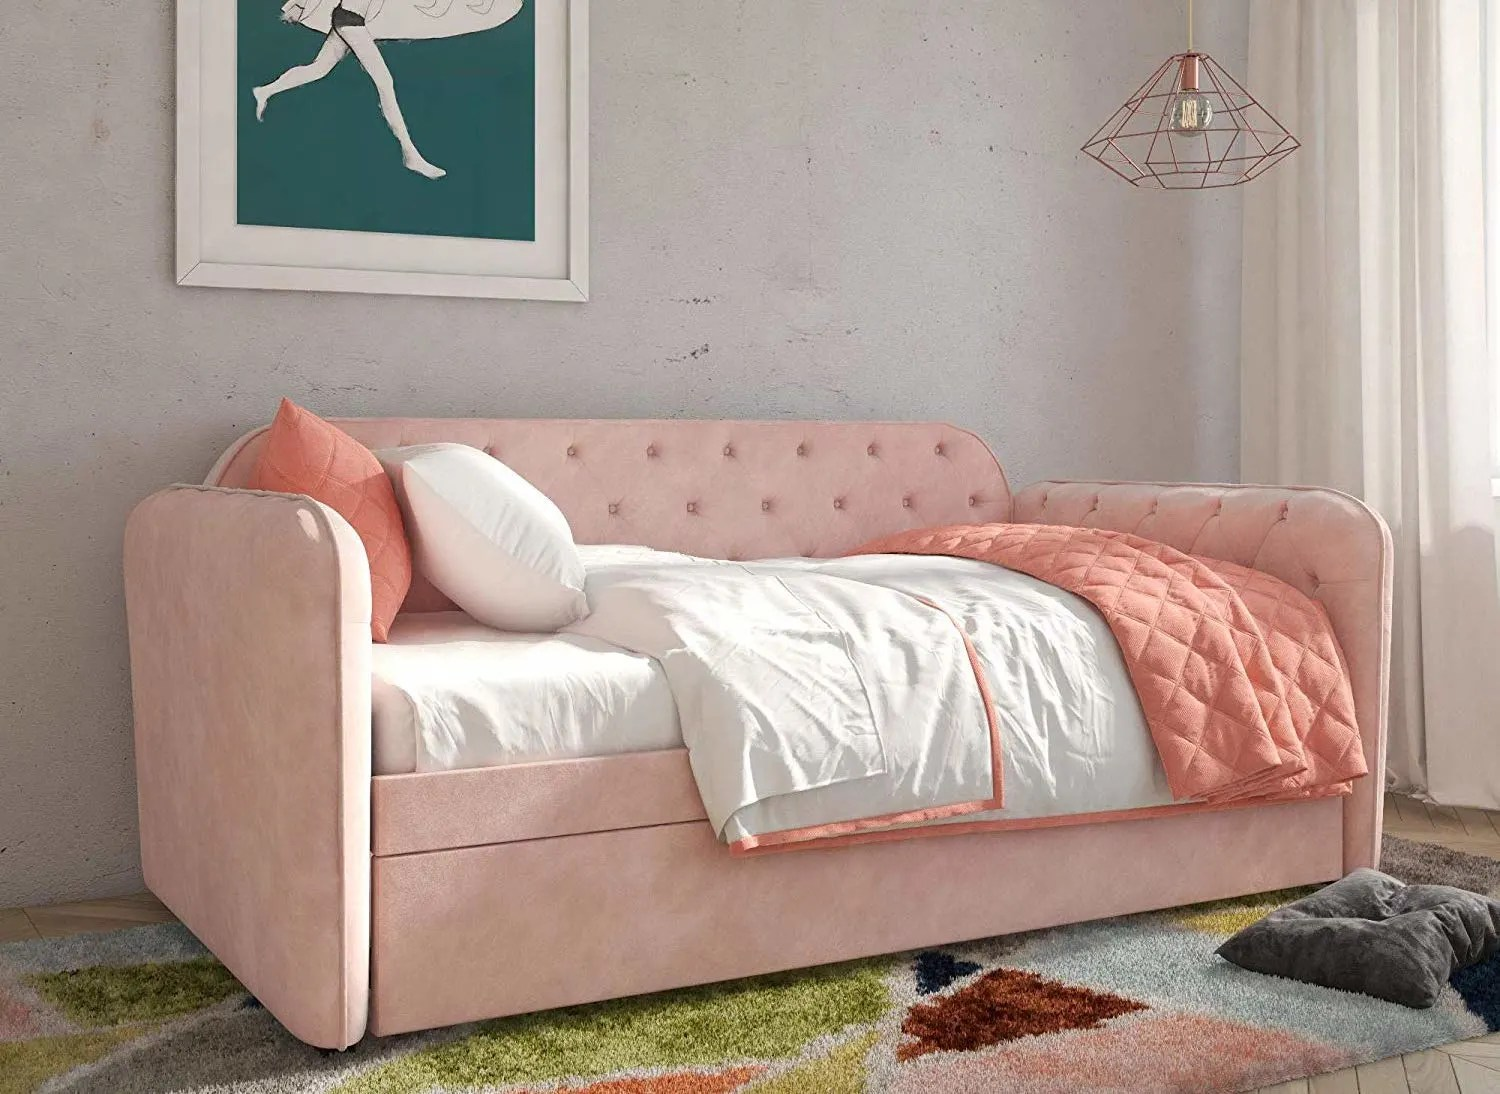 Decorating a small home might seem like a bit of a challenge at first. This Pink Velvet Daybed Is Also a Trundle Bed | Apartment